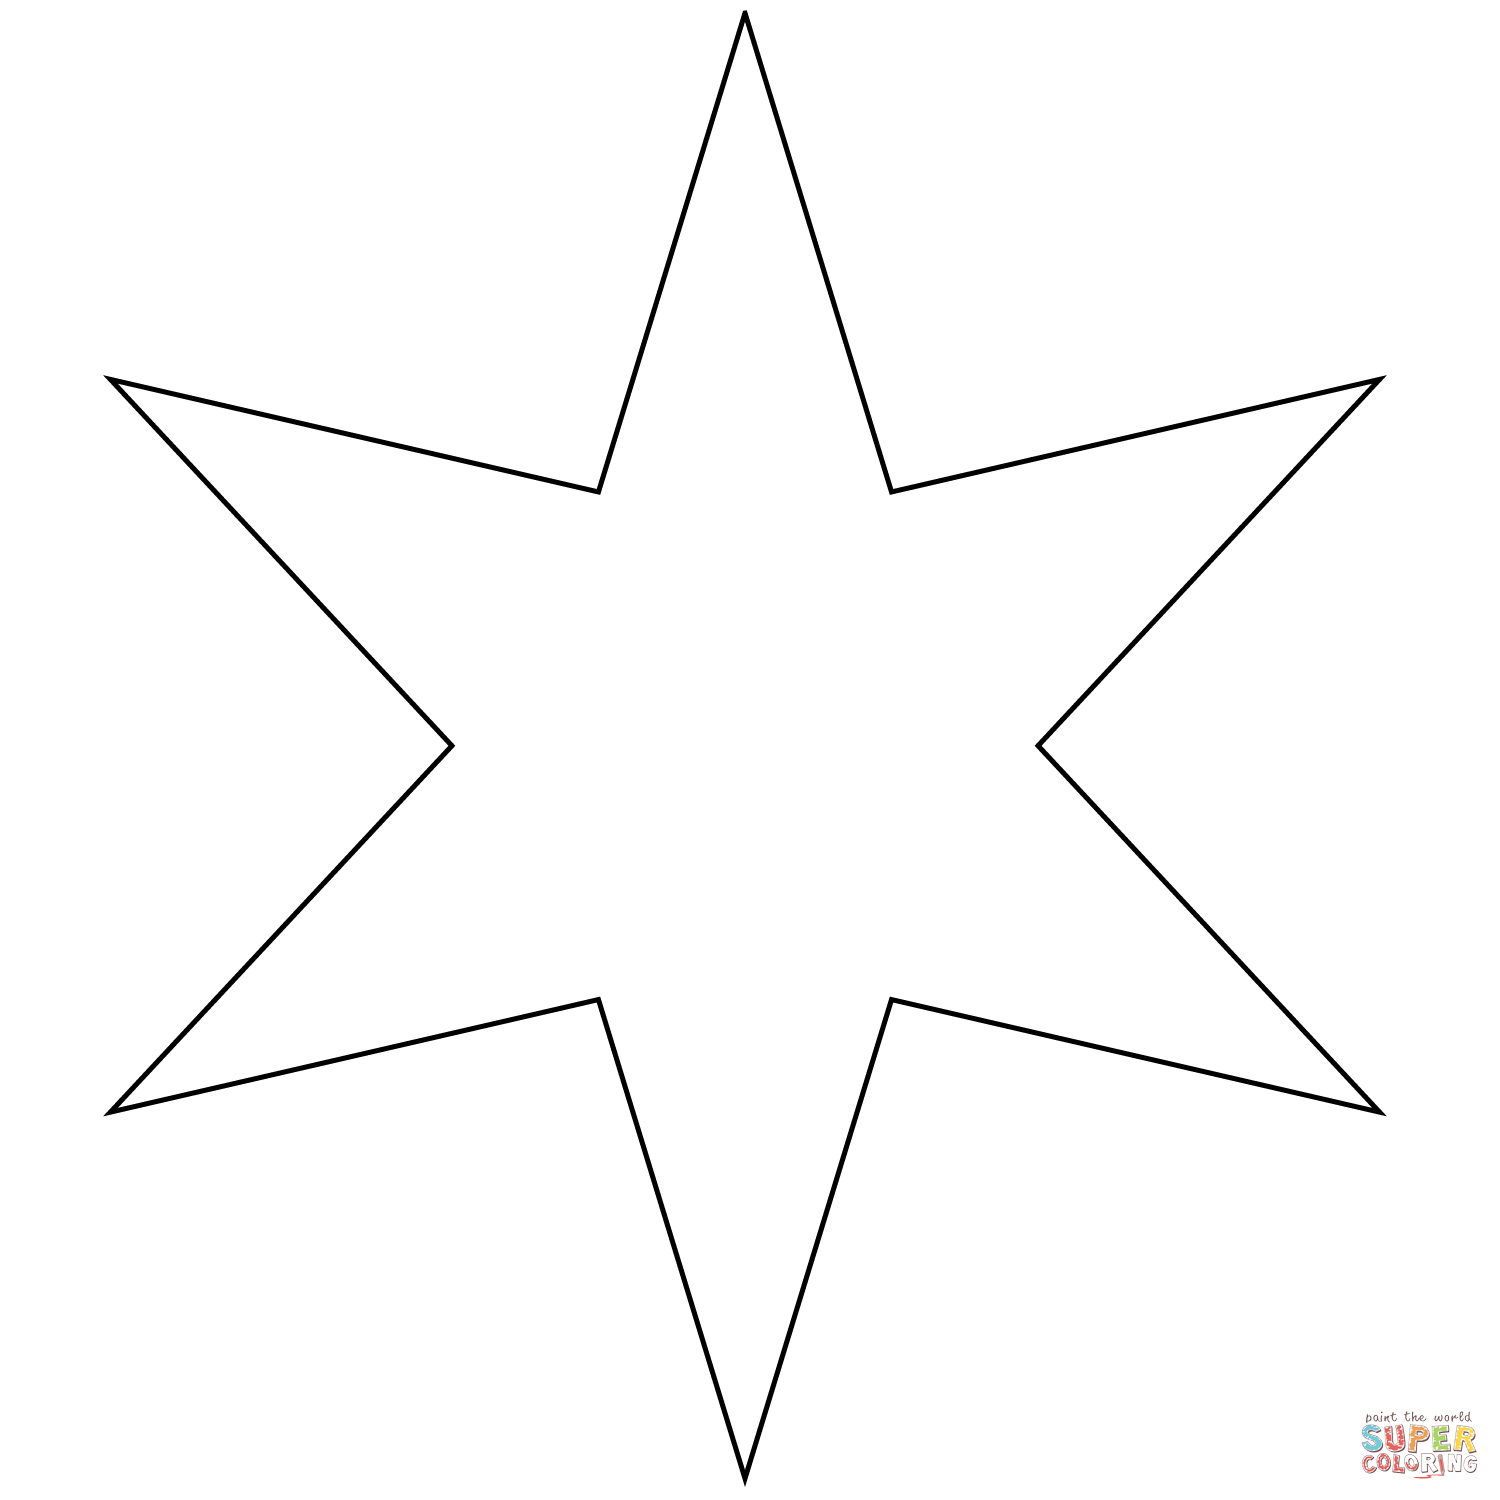 Six Pointed Star Coloring Page | Free Printable Coloring Pages - Star Of David Template Free Printable